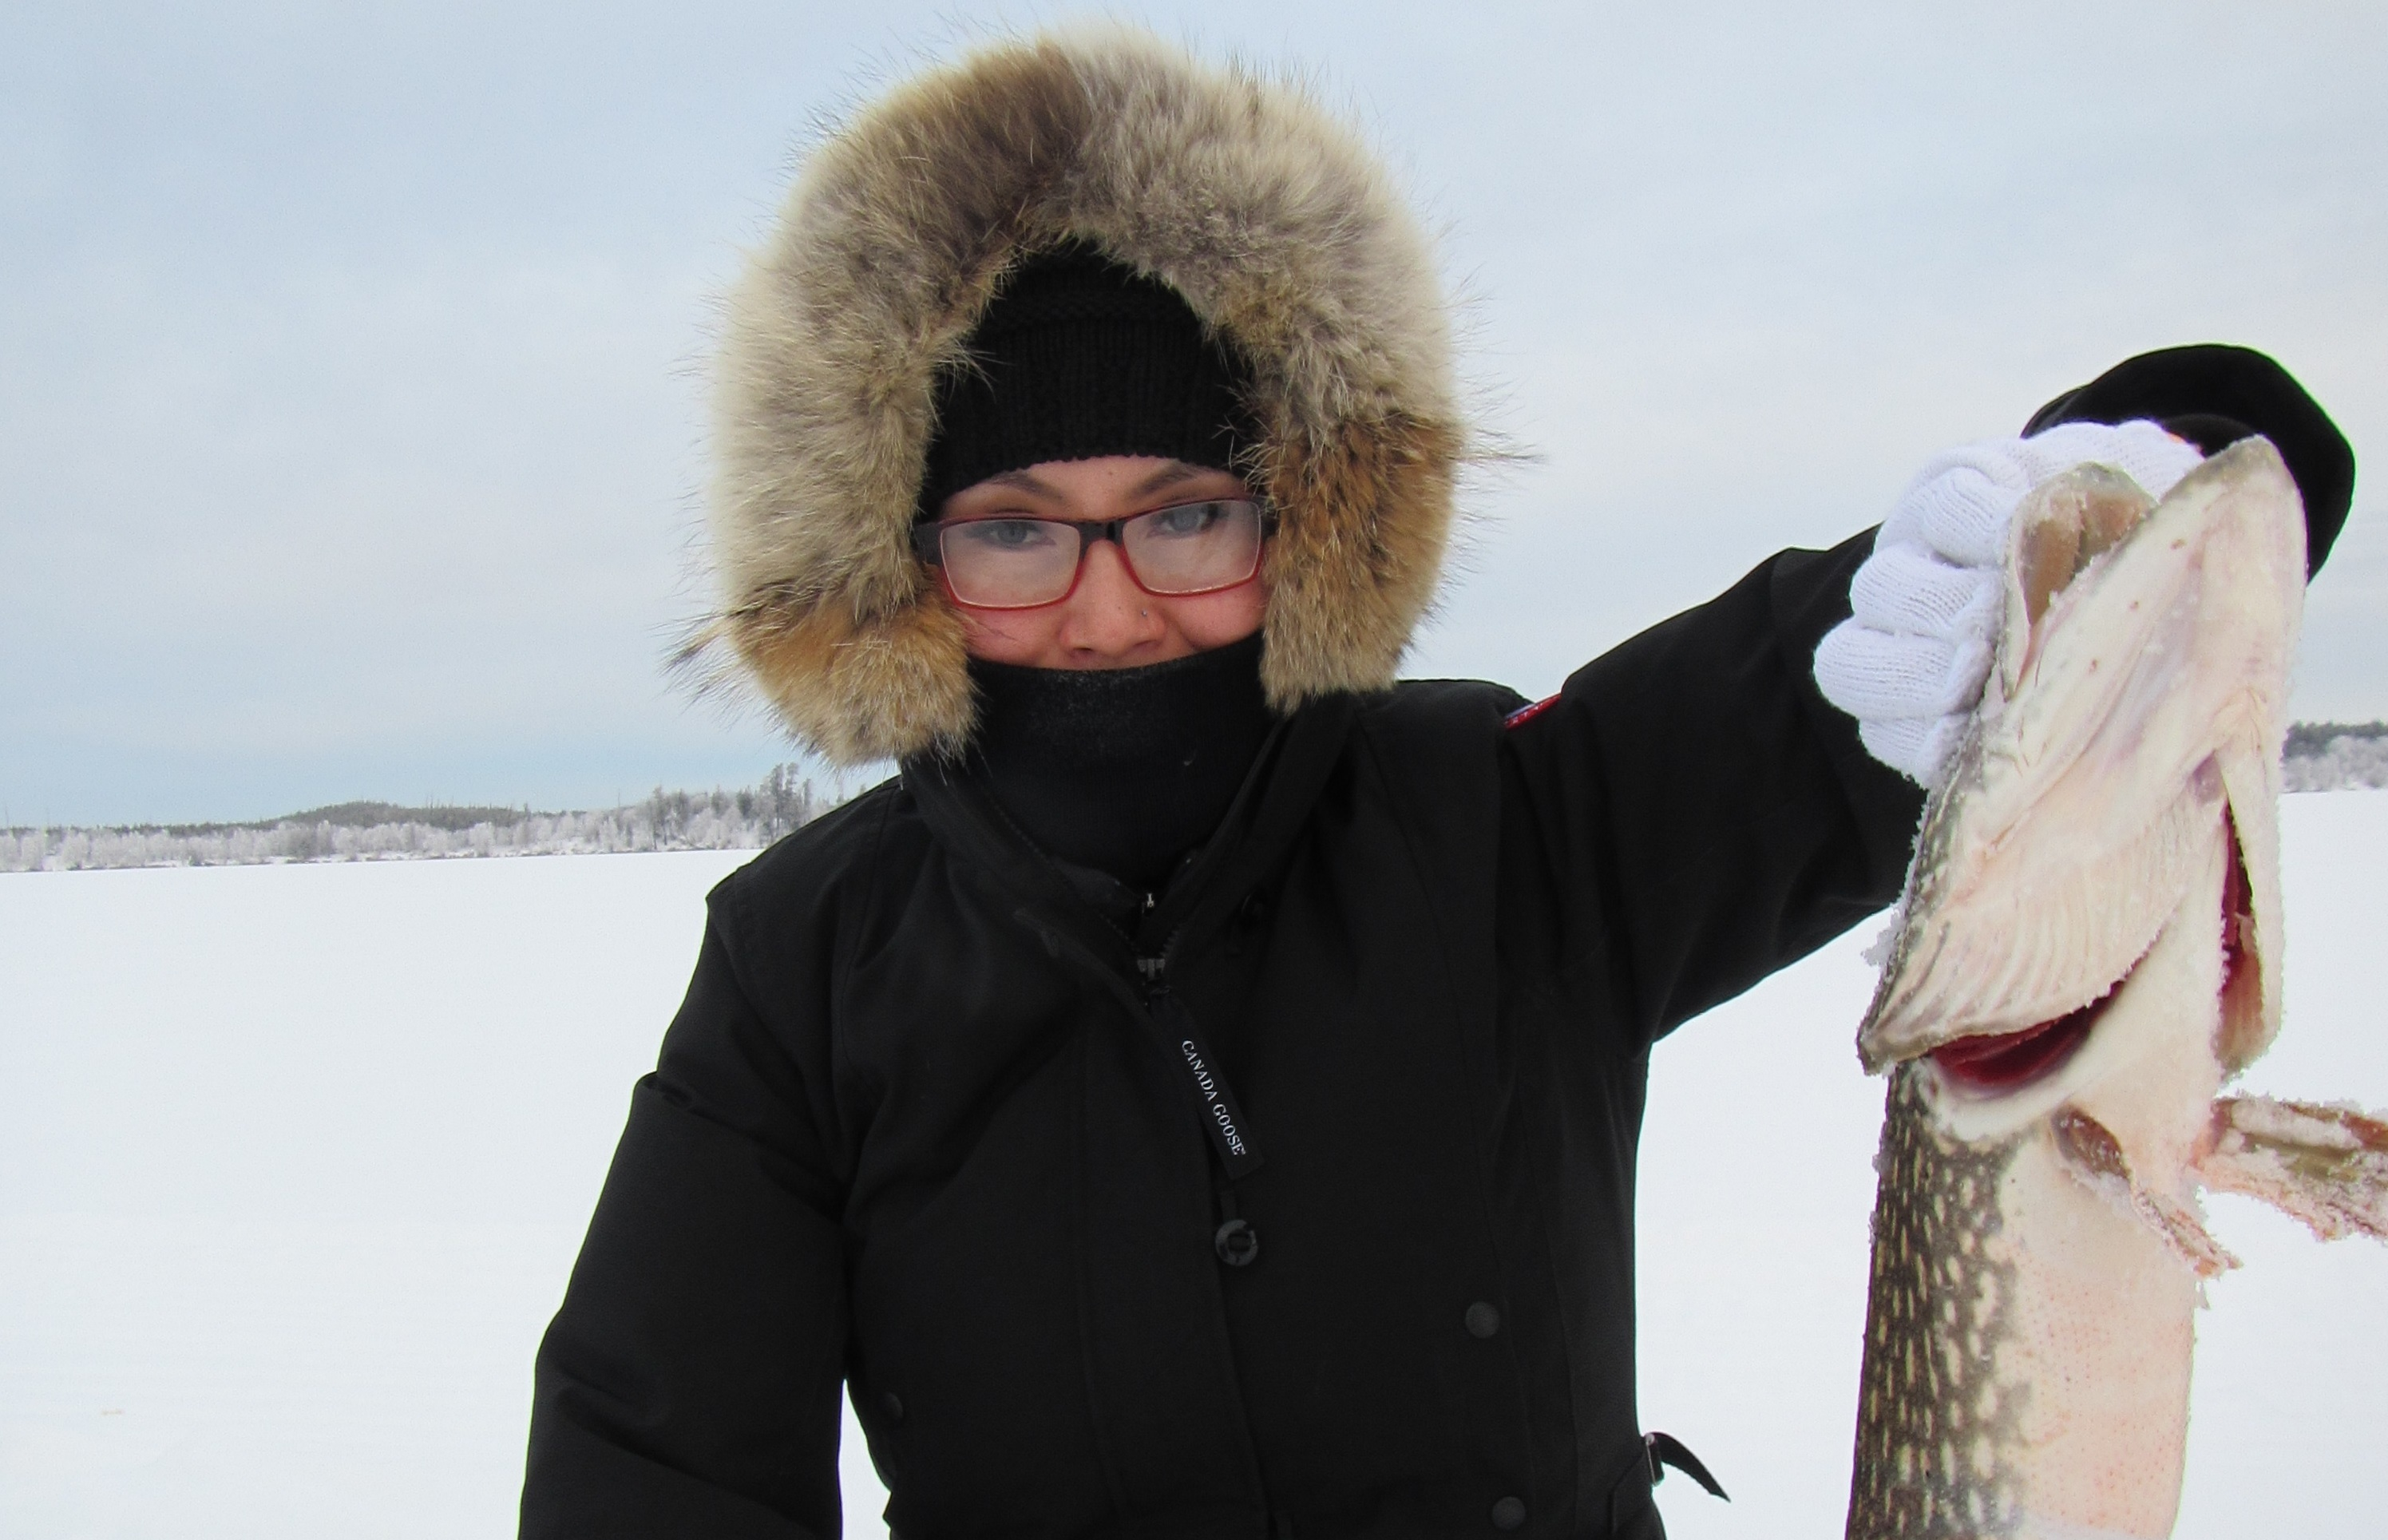 Cora Lemaigre catches a fish in a Dene culture class as part of her bachelor of education degree. (Submitted by Cora Lemaigre)